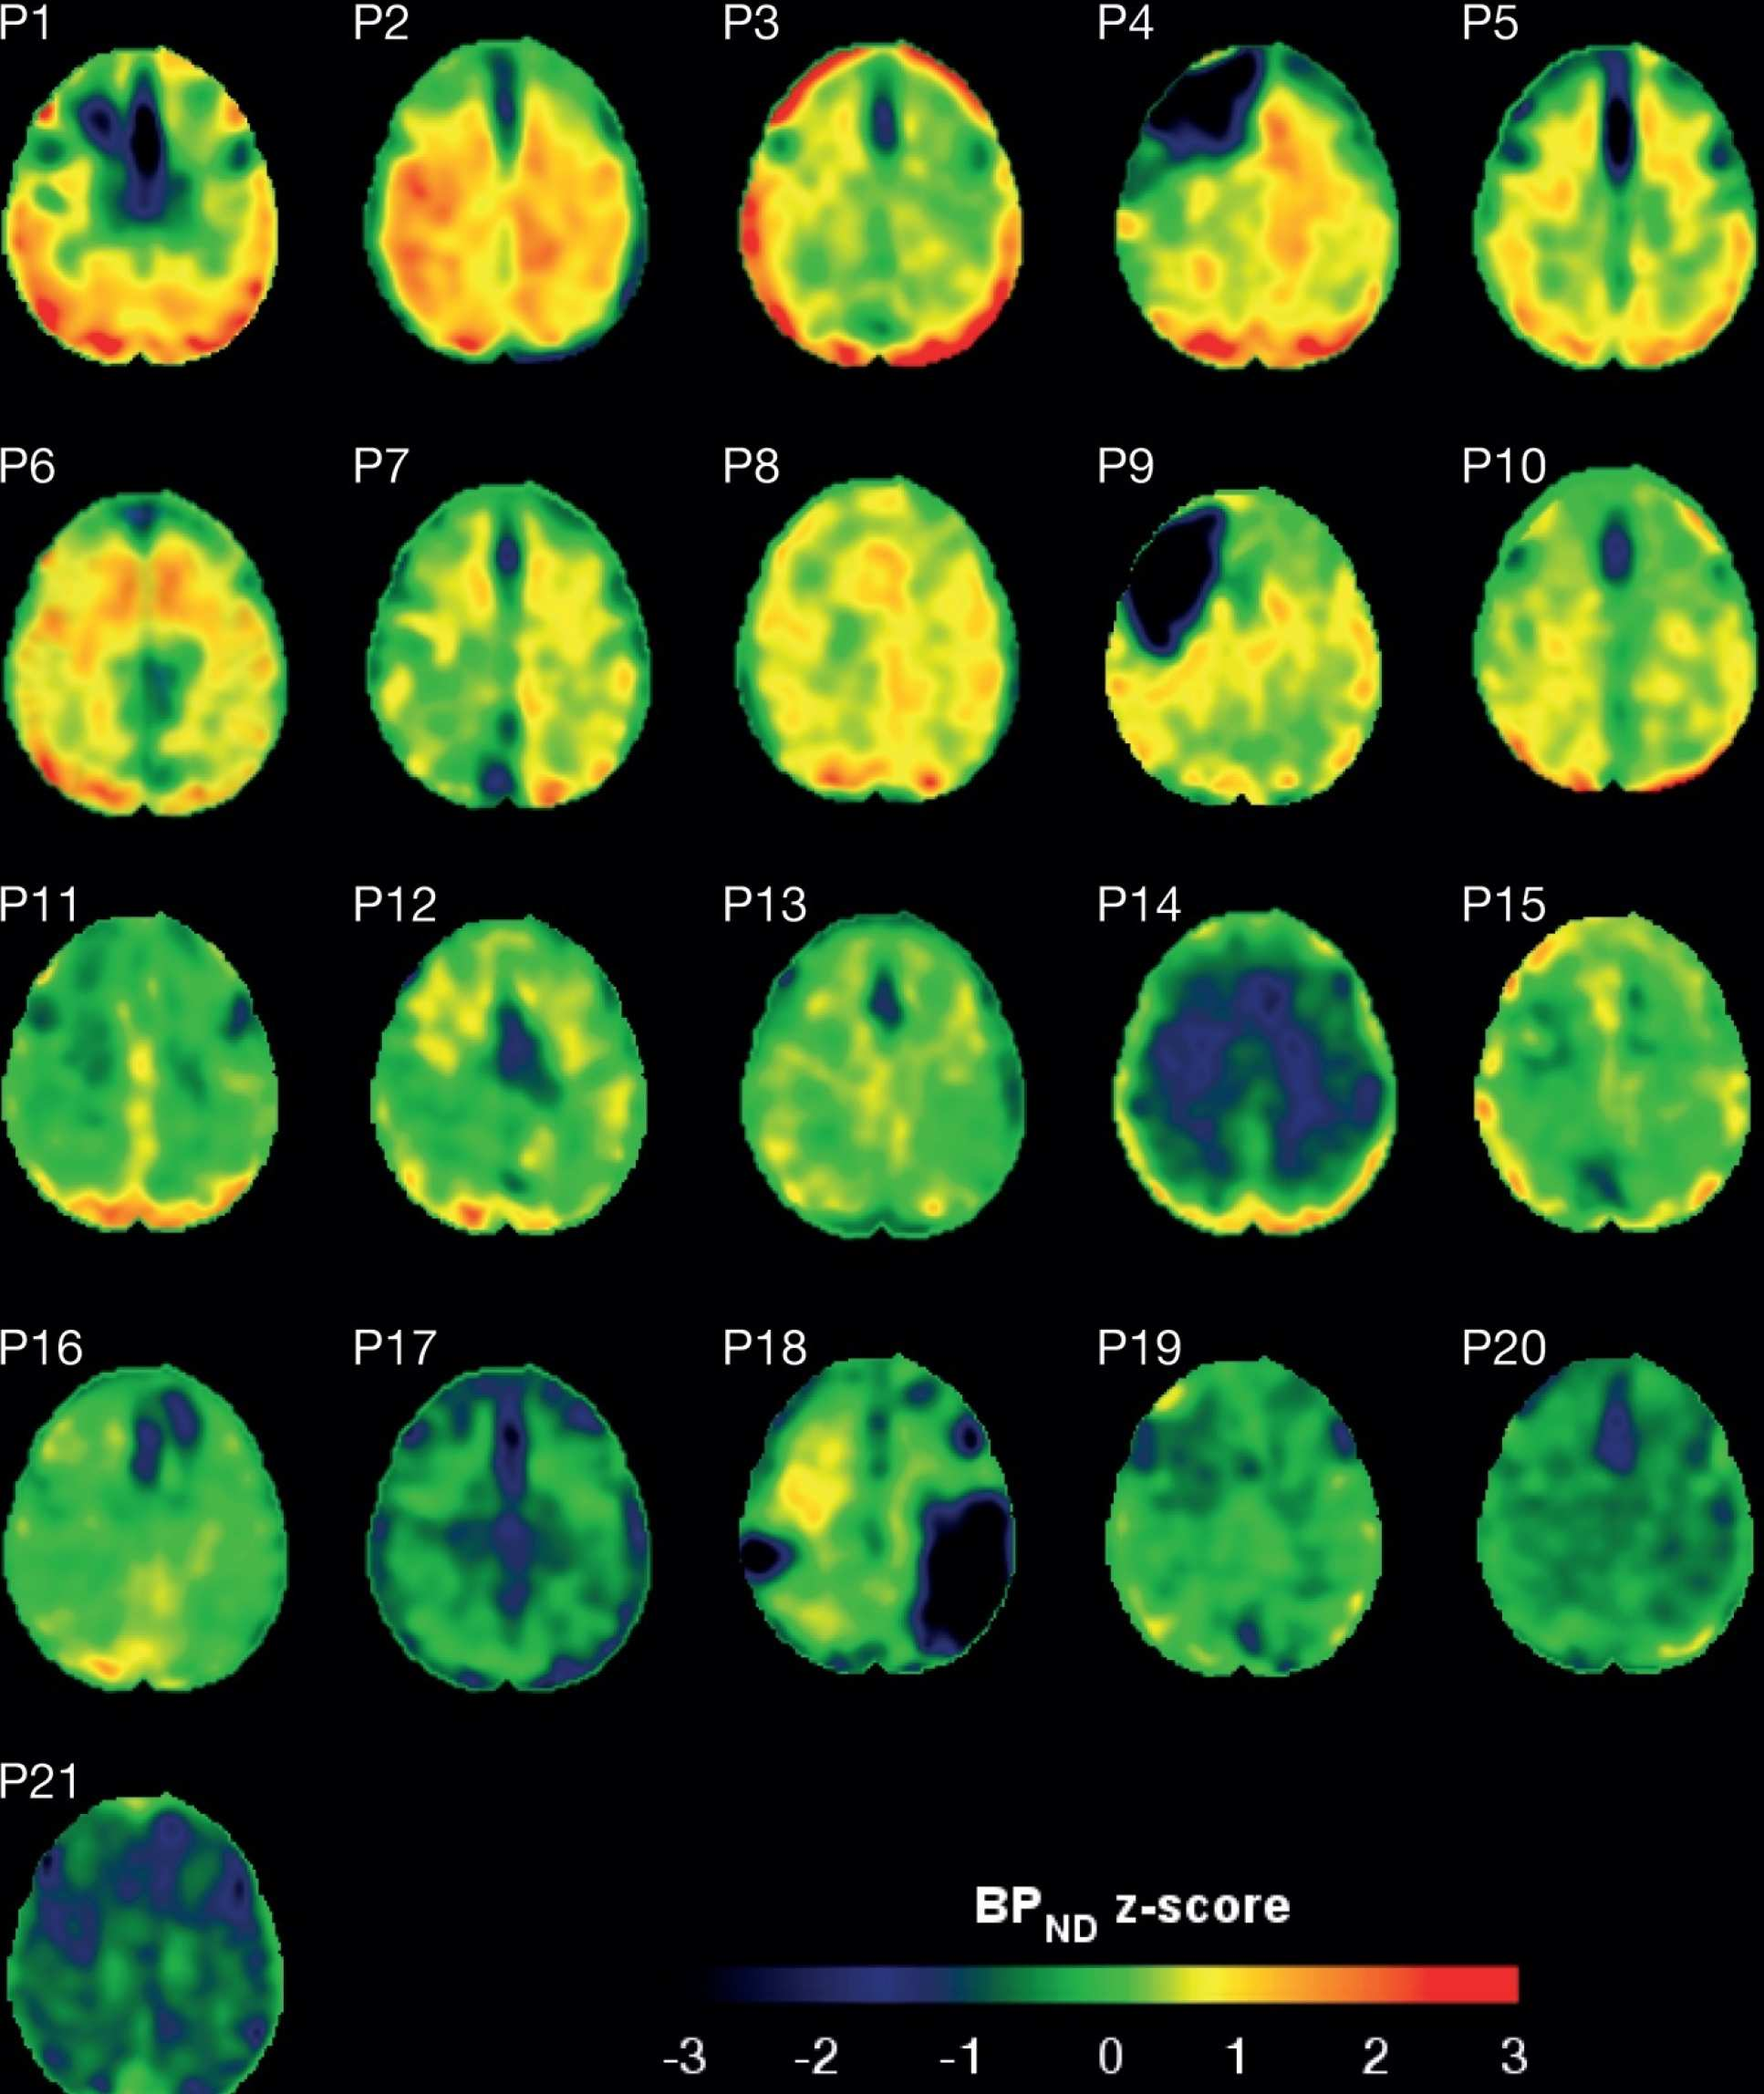 These scans show the amount of tau protein in the brains of patients who have suffered a traumatic brain injury. Red represents increased tau accumulation